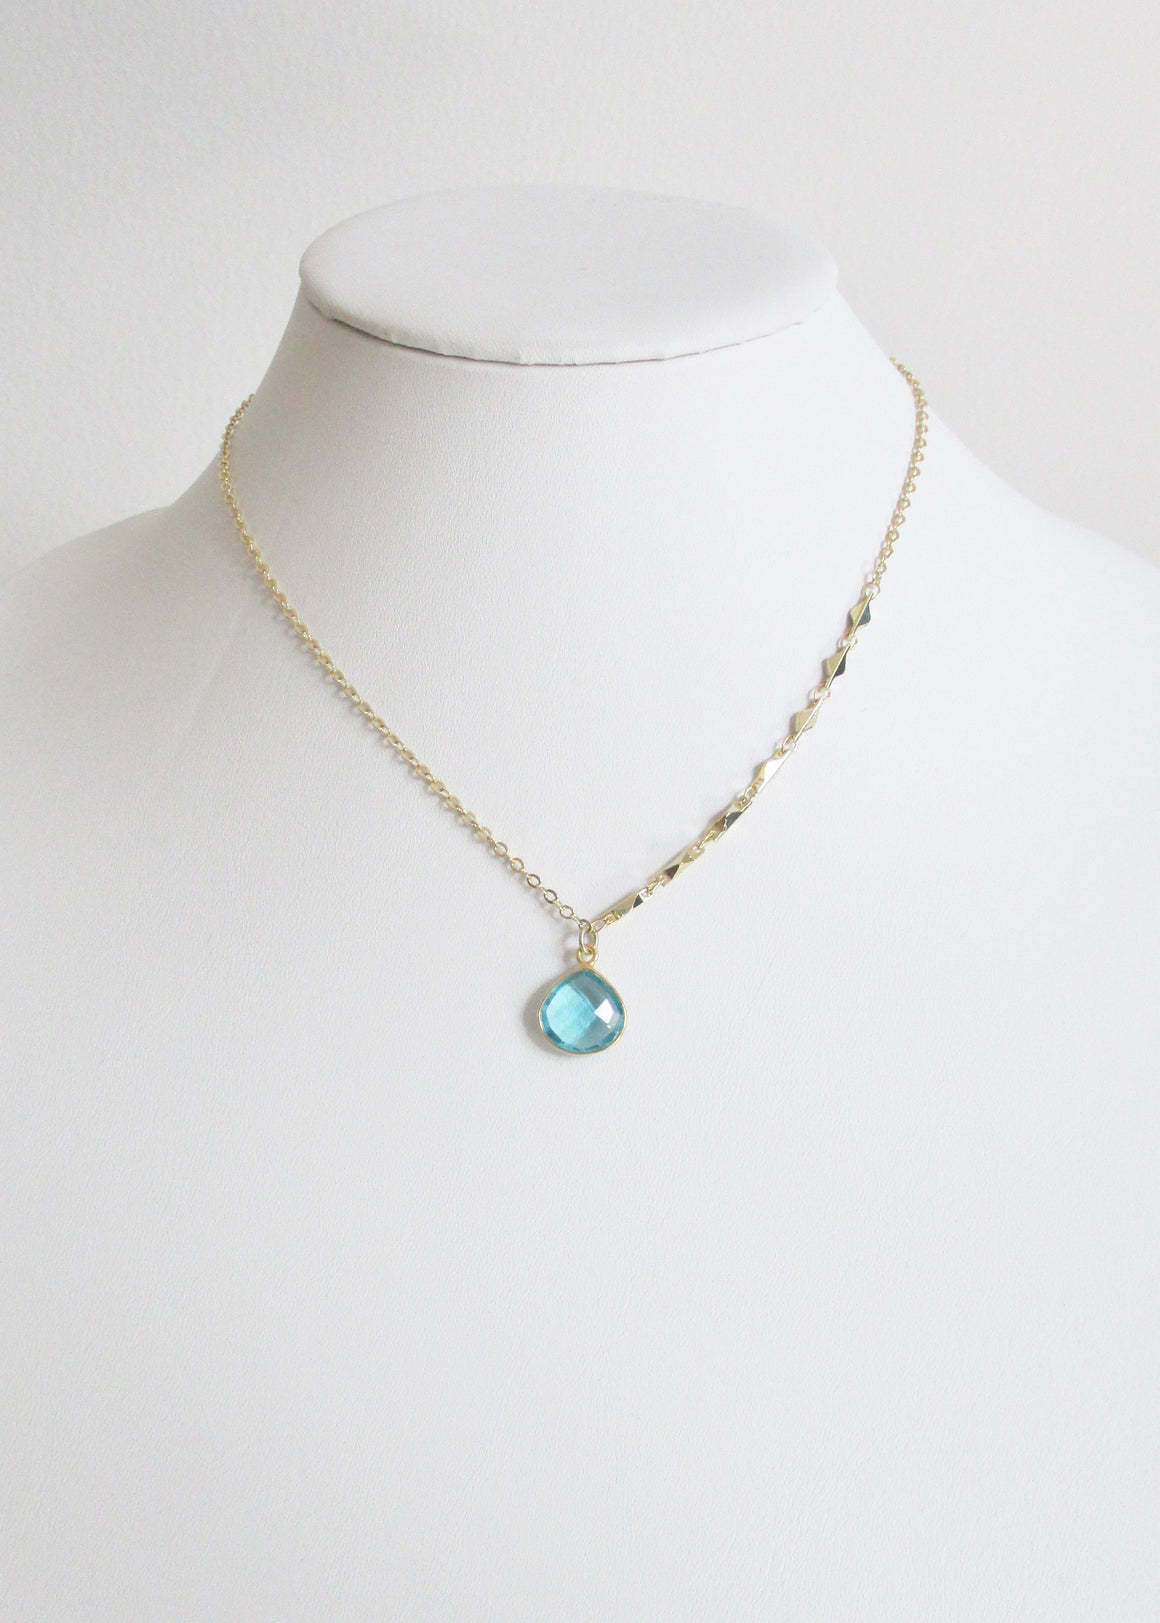 LIVEOUTLOUD ARIANNA CABLE AQUAMARINE NECKLACE